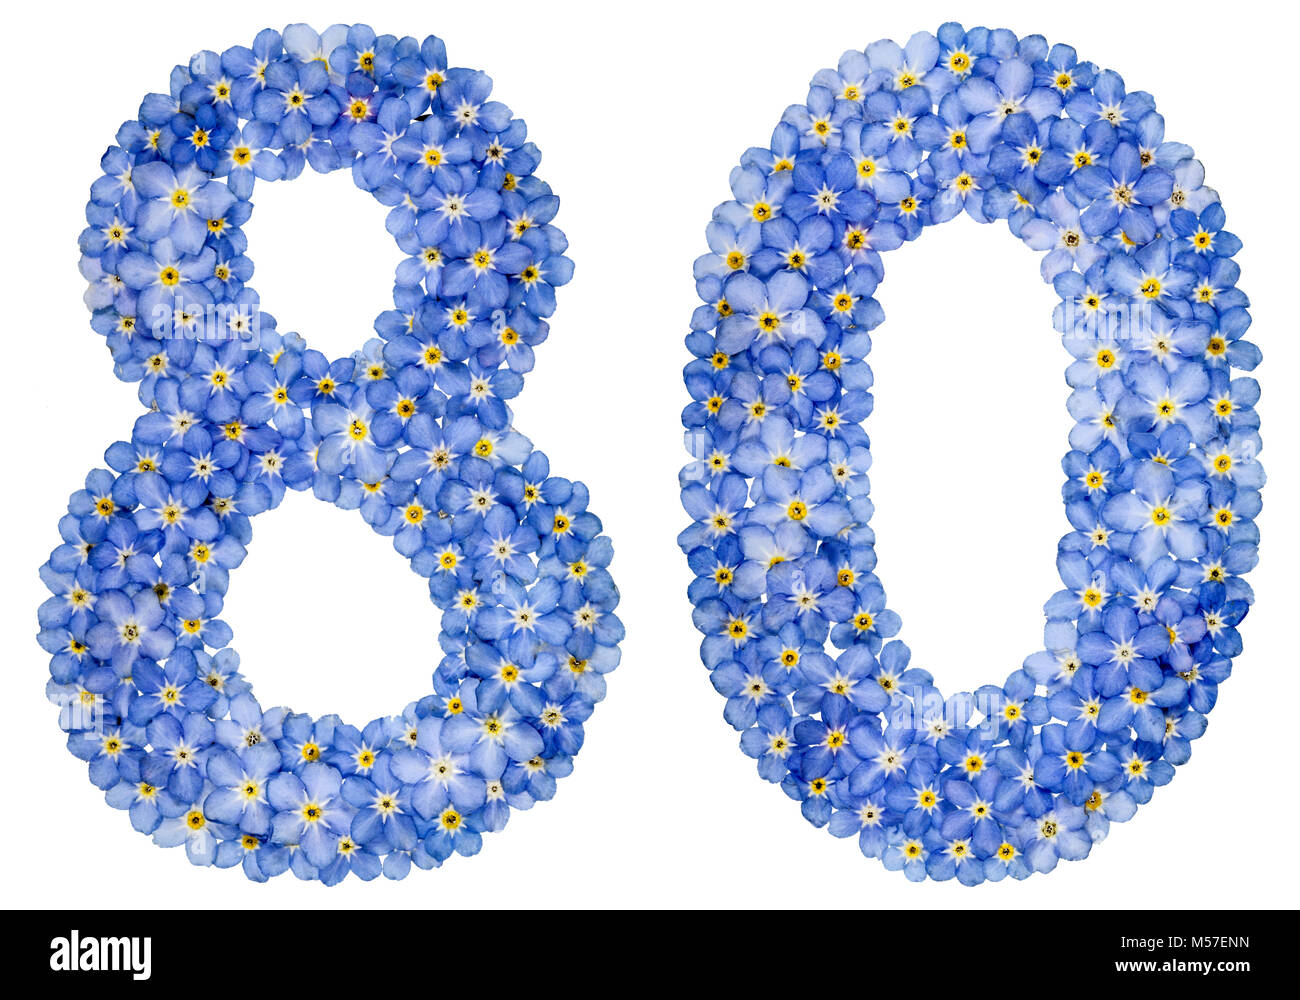 Arabic numeral 80, eighty, from blue forget-me-not flowers - Stock Image